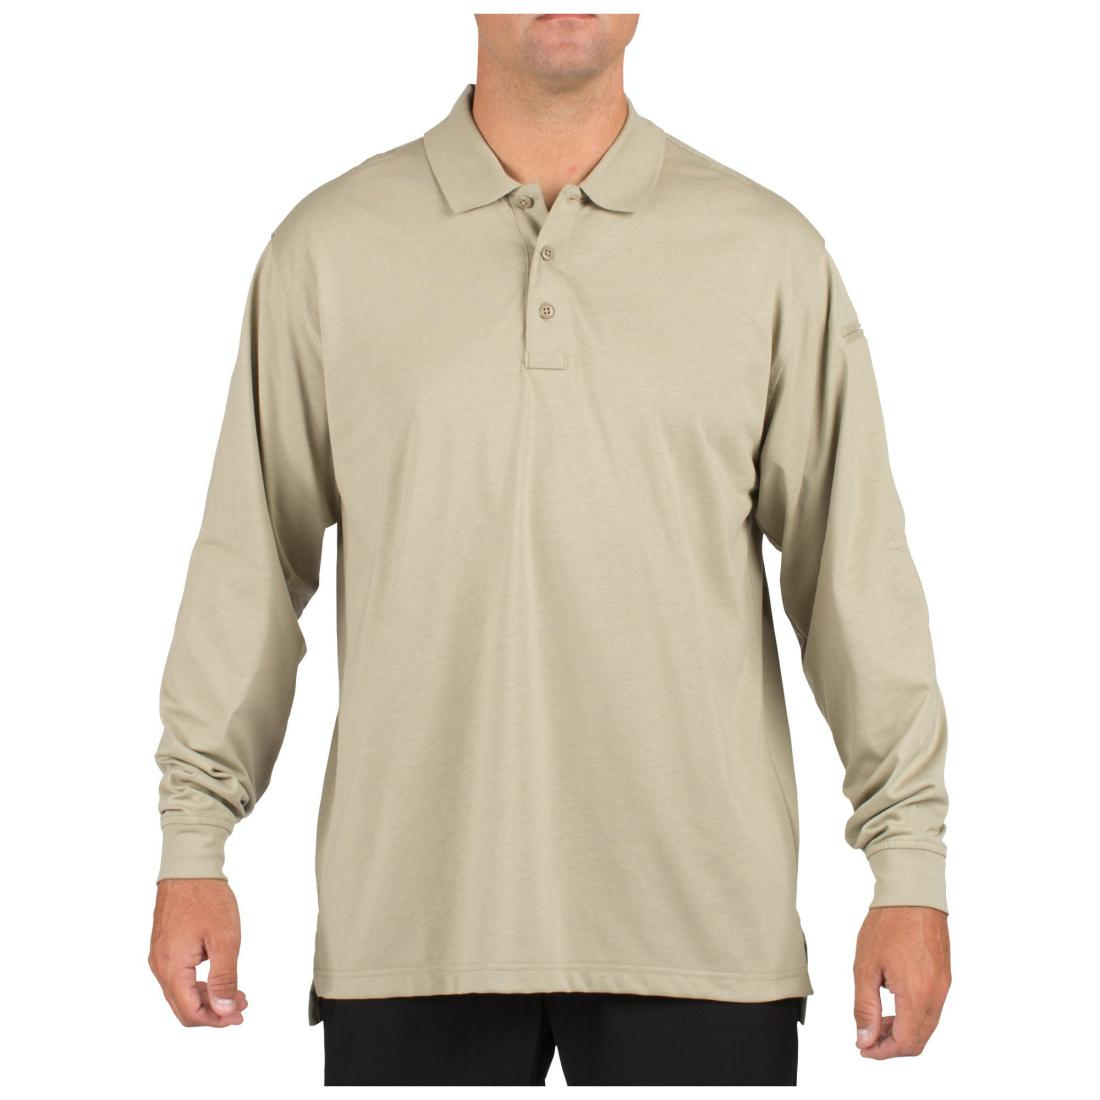 5.11 Tactical 72360 Men Tactical Jersey Long Sleeve Polo Silver Tan